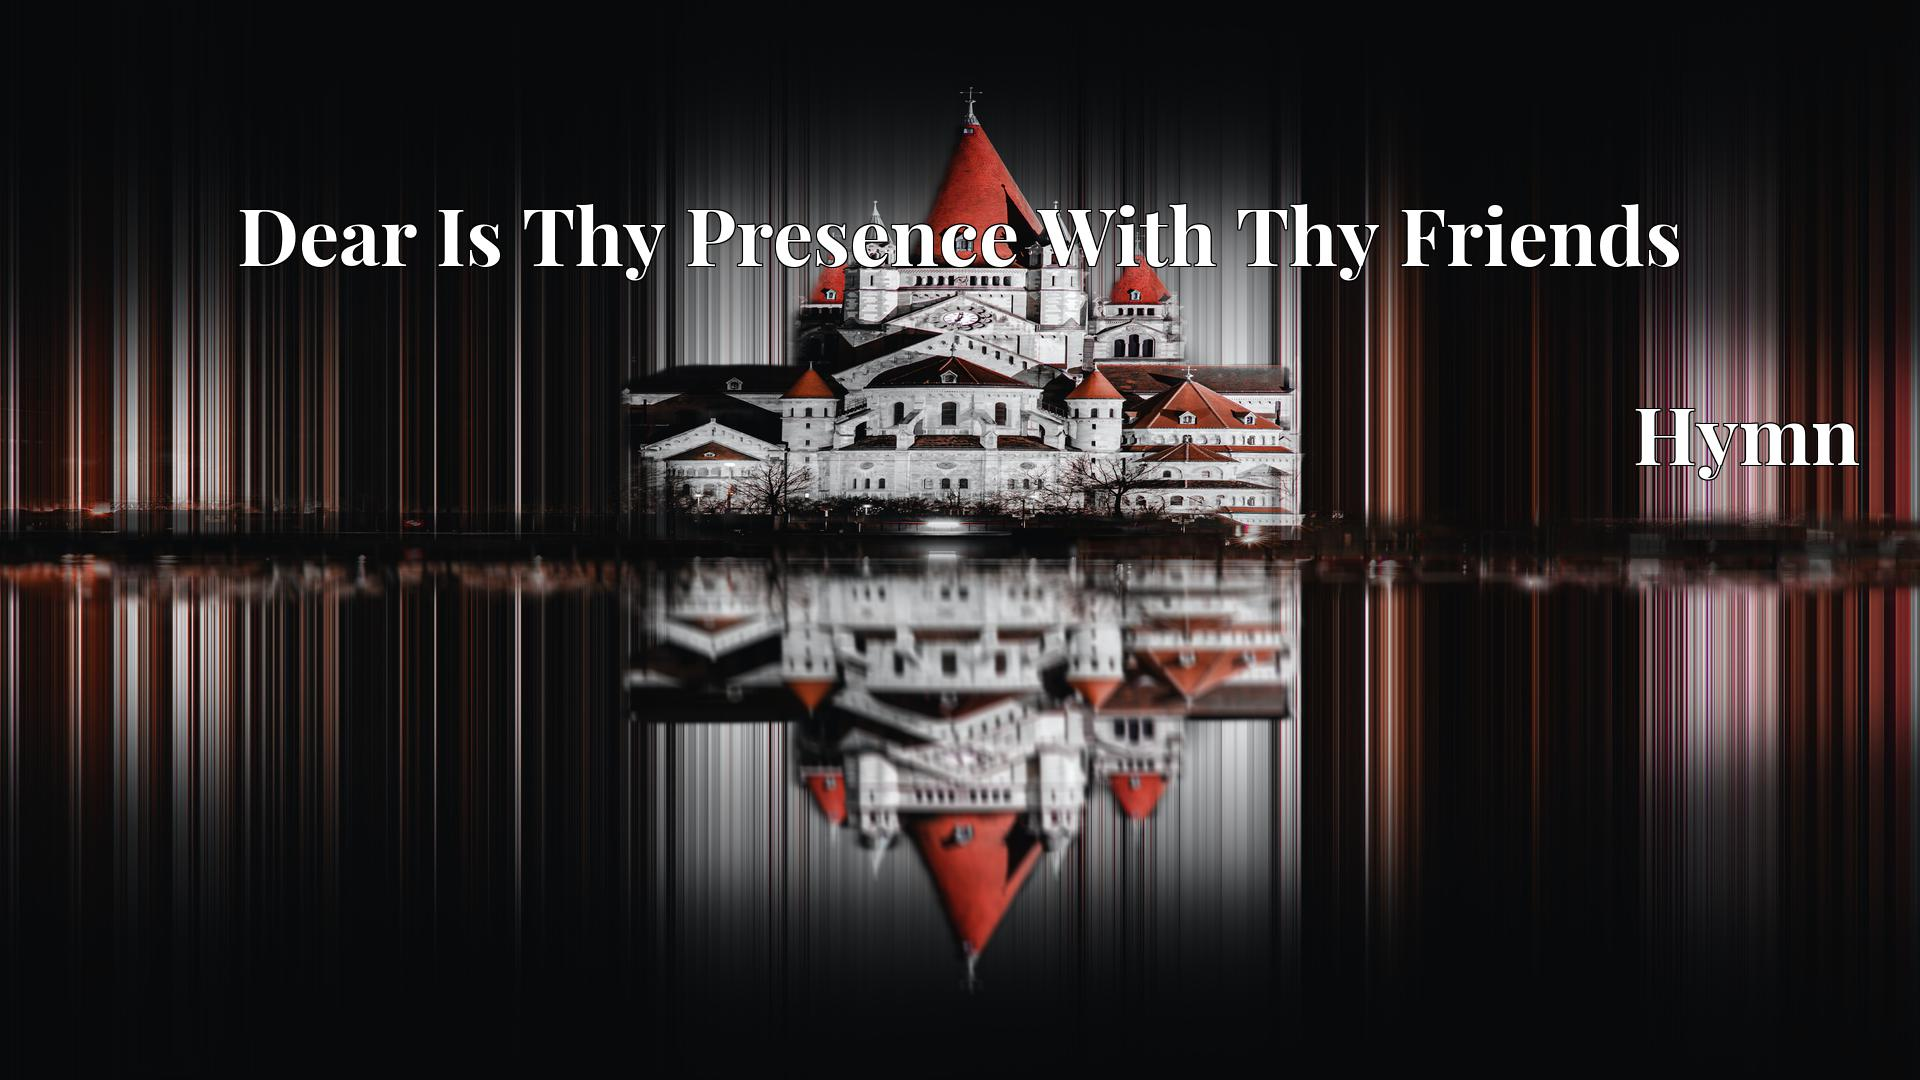 Dear Is Thy Presence With Thy Friends - Hymn